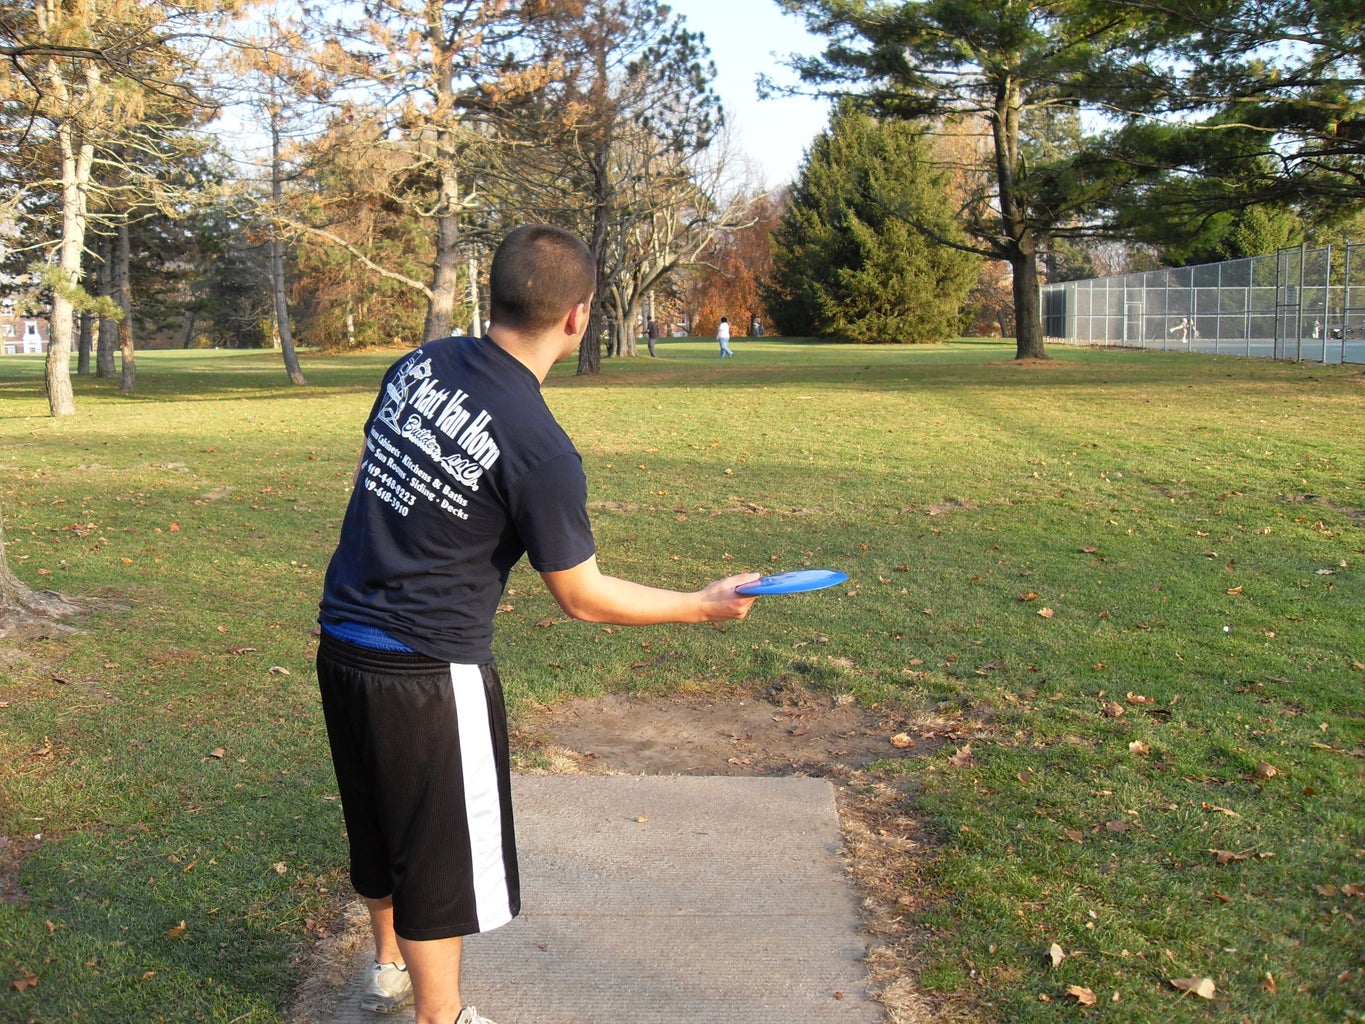 Throwing With Grip #2